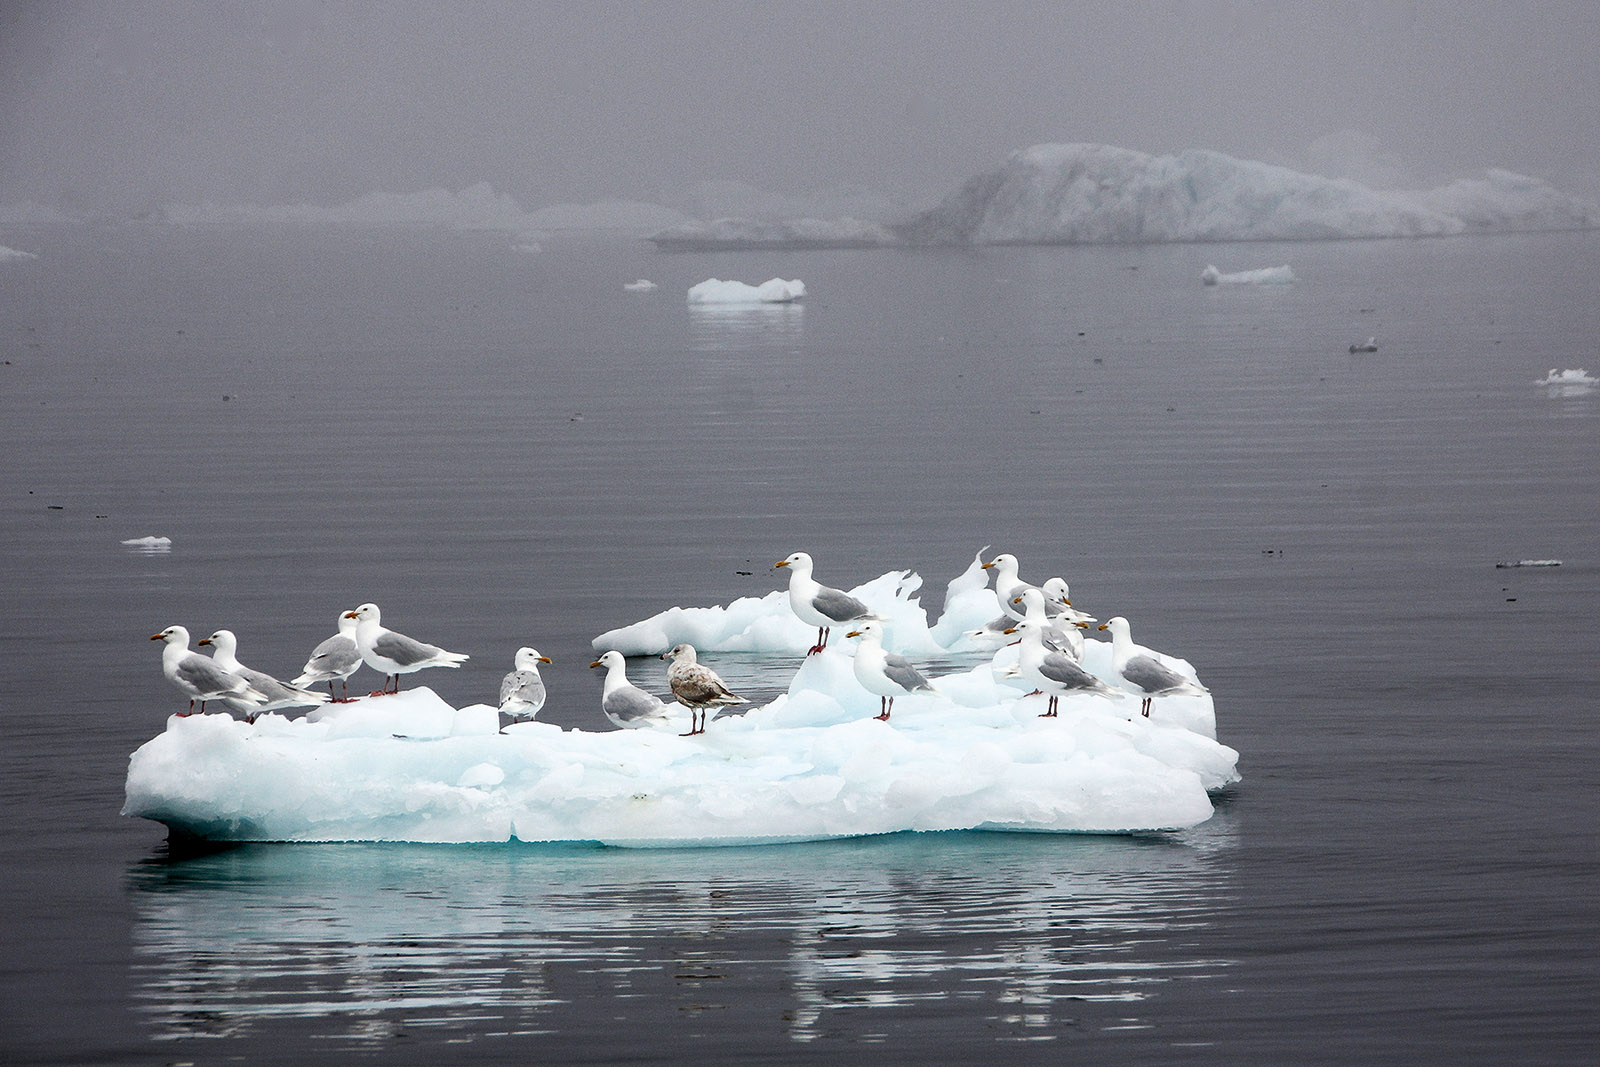 Photograph of birds on an iceberg in Greenland